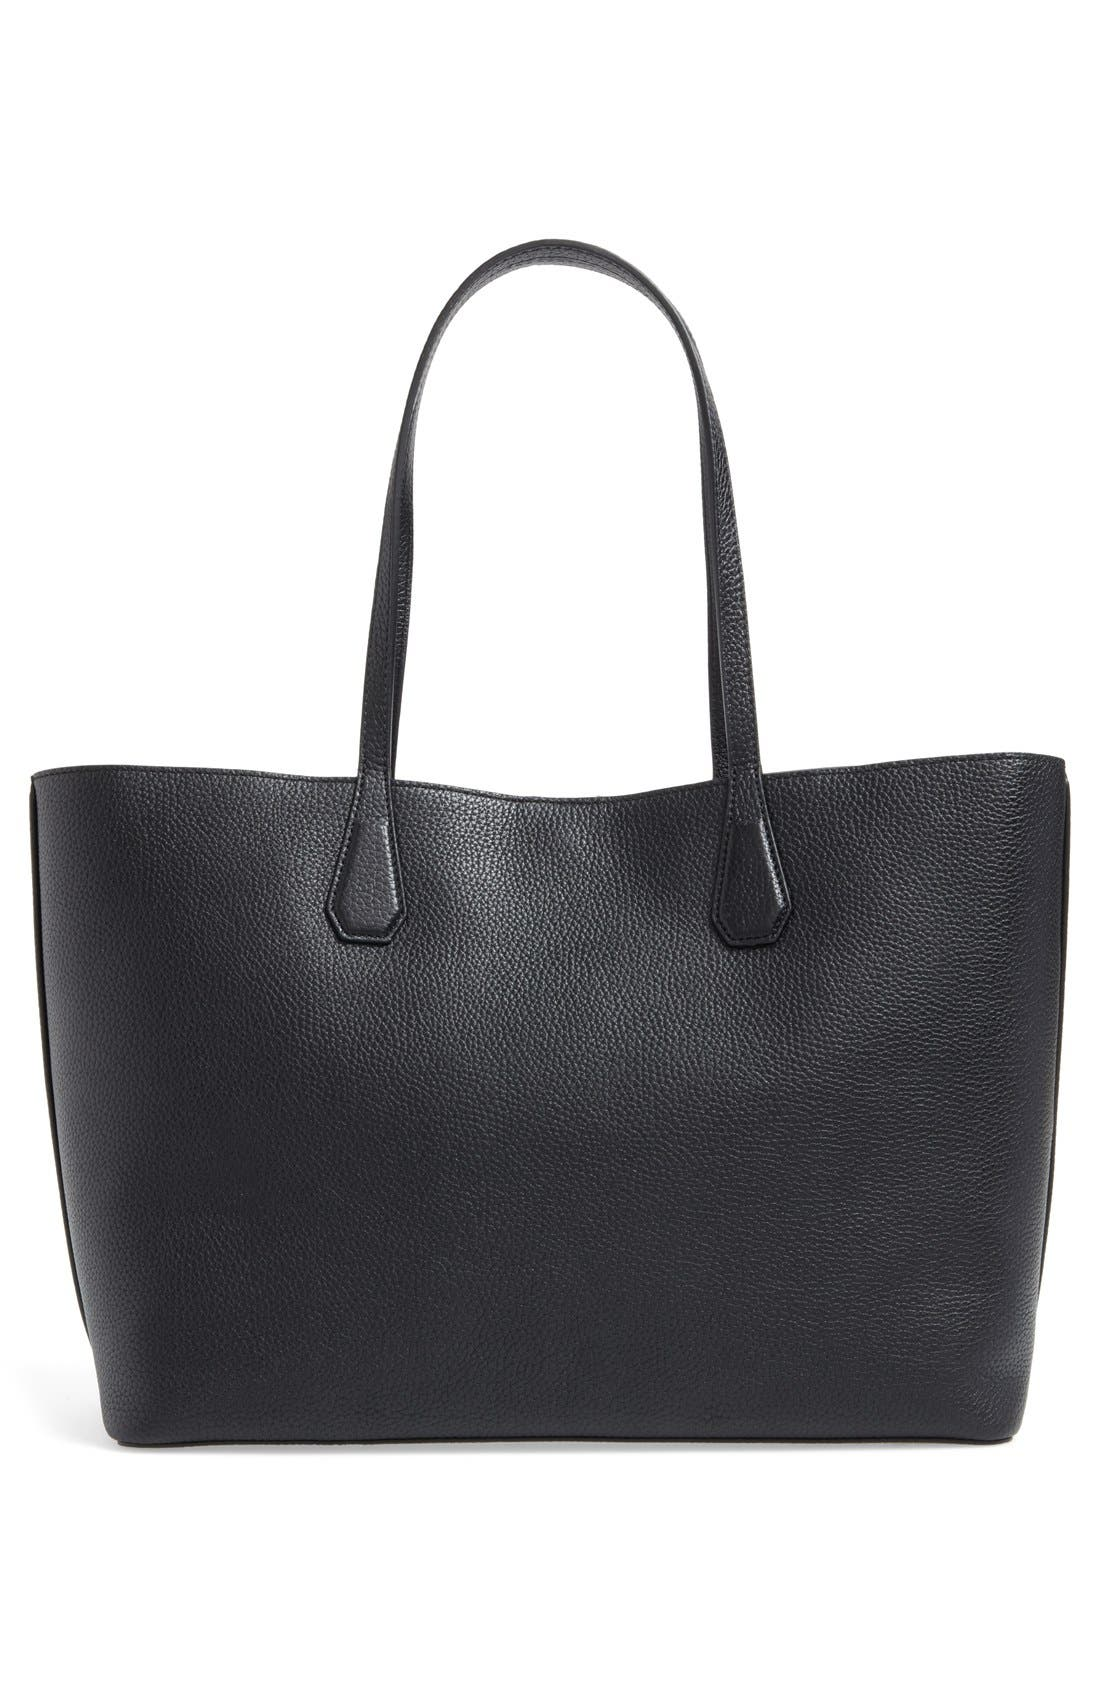 'Perry' Leather Tote,                             Alternate thumbnail 4, color,                             002